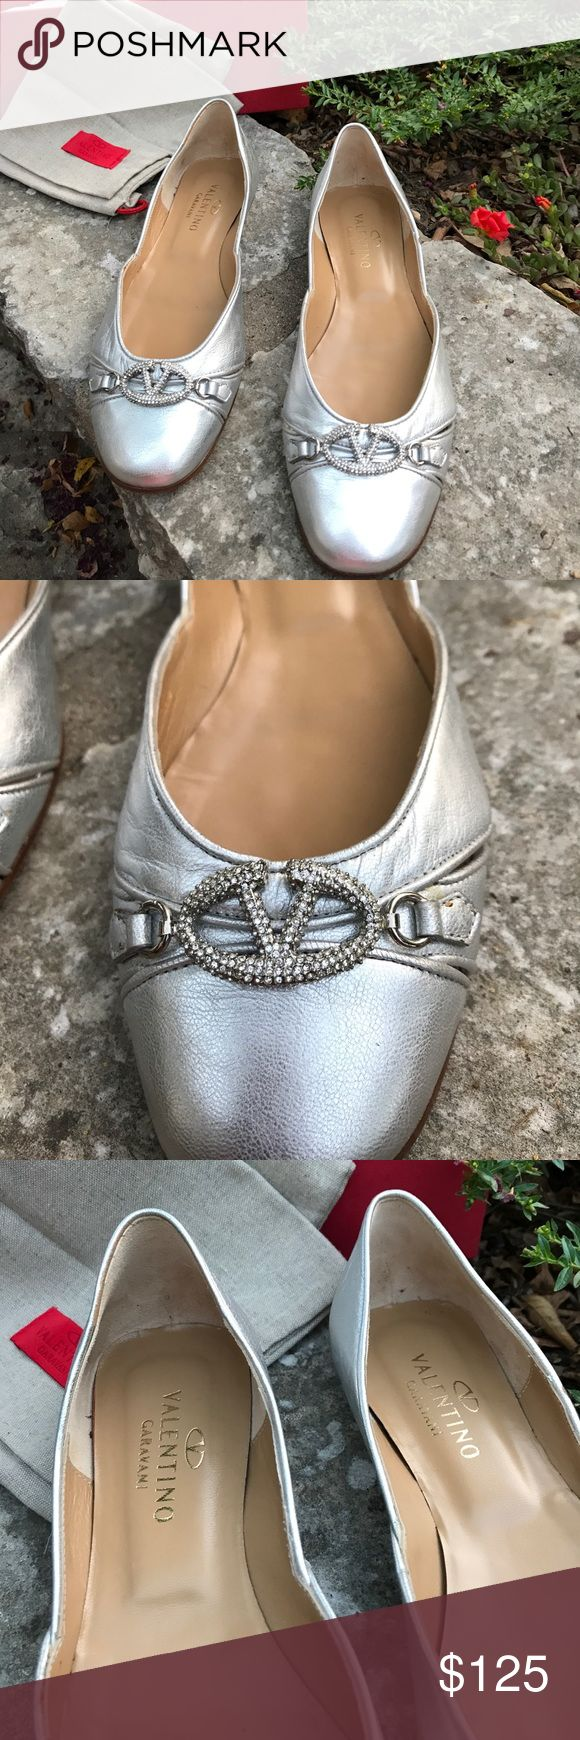 Classic New Valentino silver logo flats Silver crystal logo in the front.Valentino flat size 38.5. Please are new in box. I do notice a small nick as shown in photo. This would not be visible when wearing. Valentino Shoes Flats & Loafers